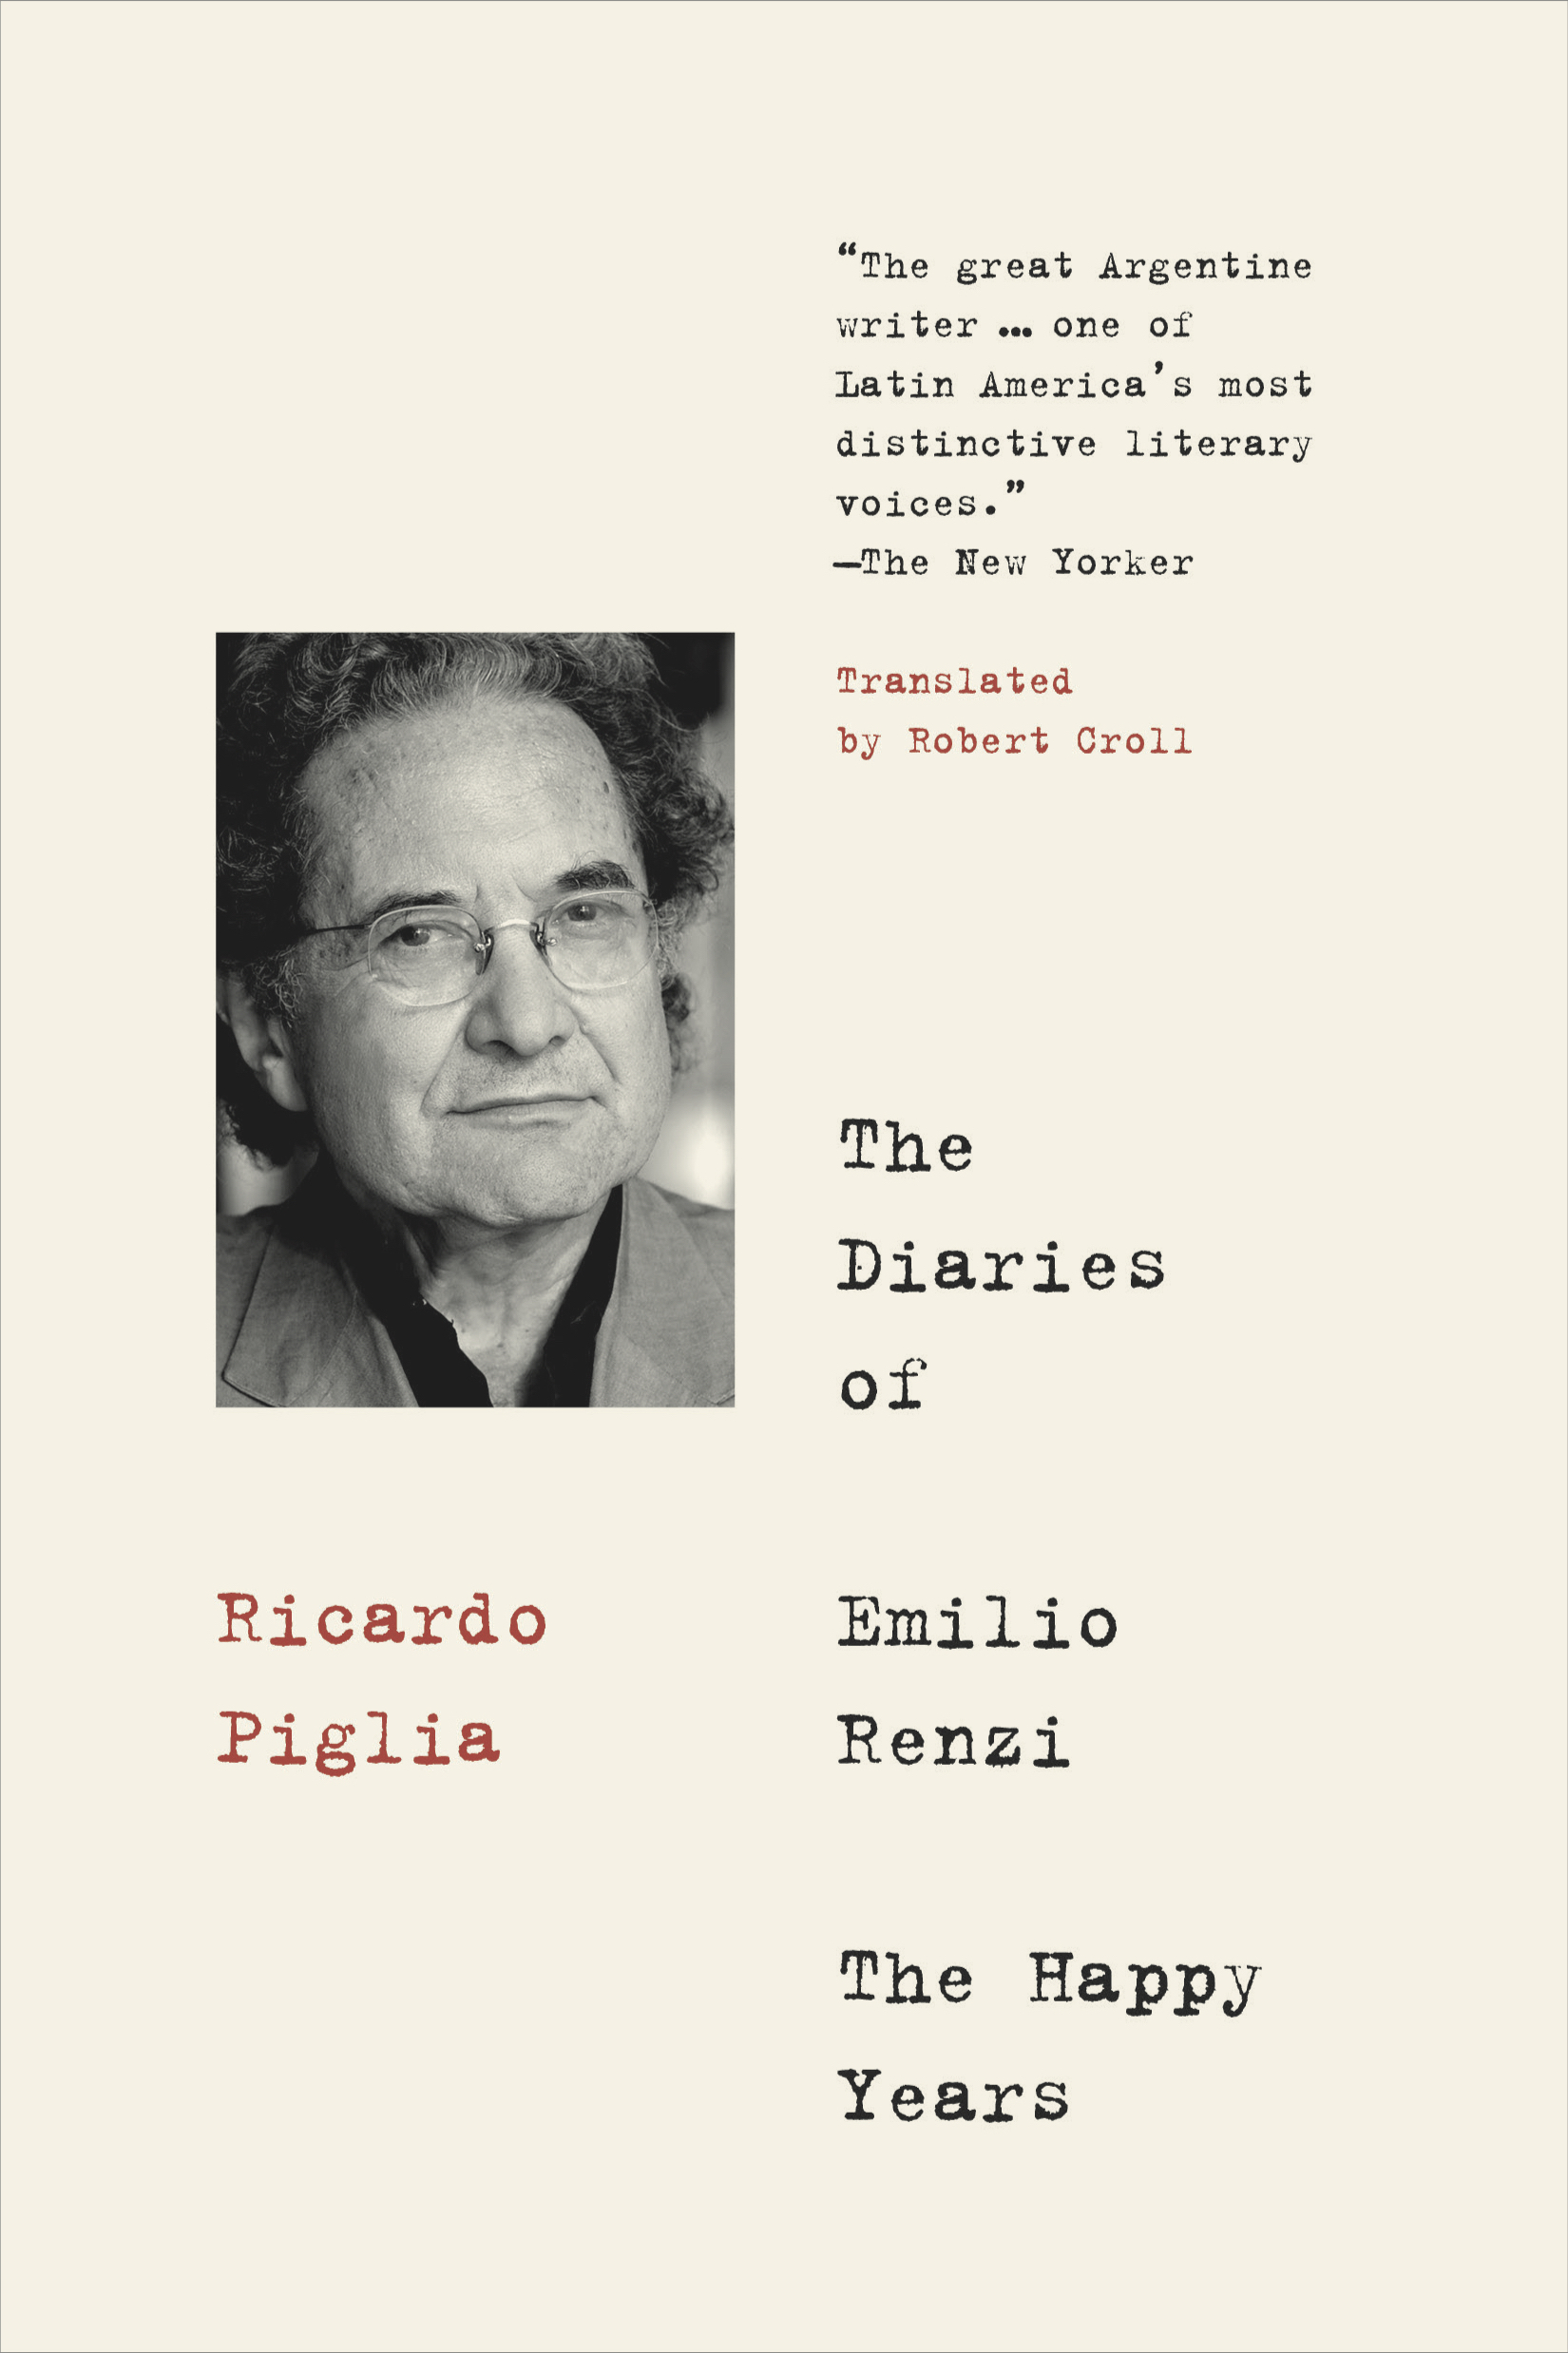 The Diaries of Emilio Renzi - The Happy Years by Ricardo Piglia - 9781632061980.jpg